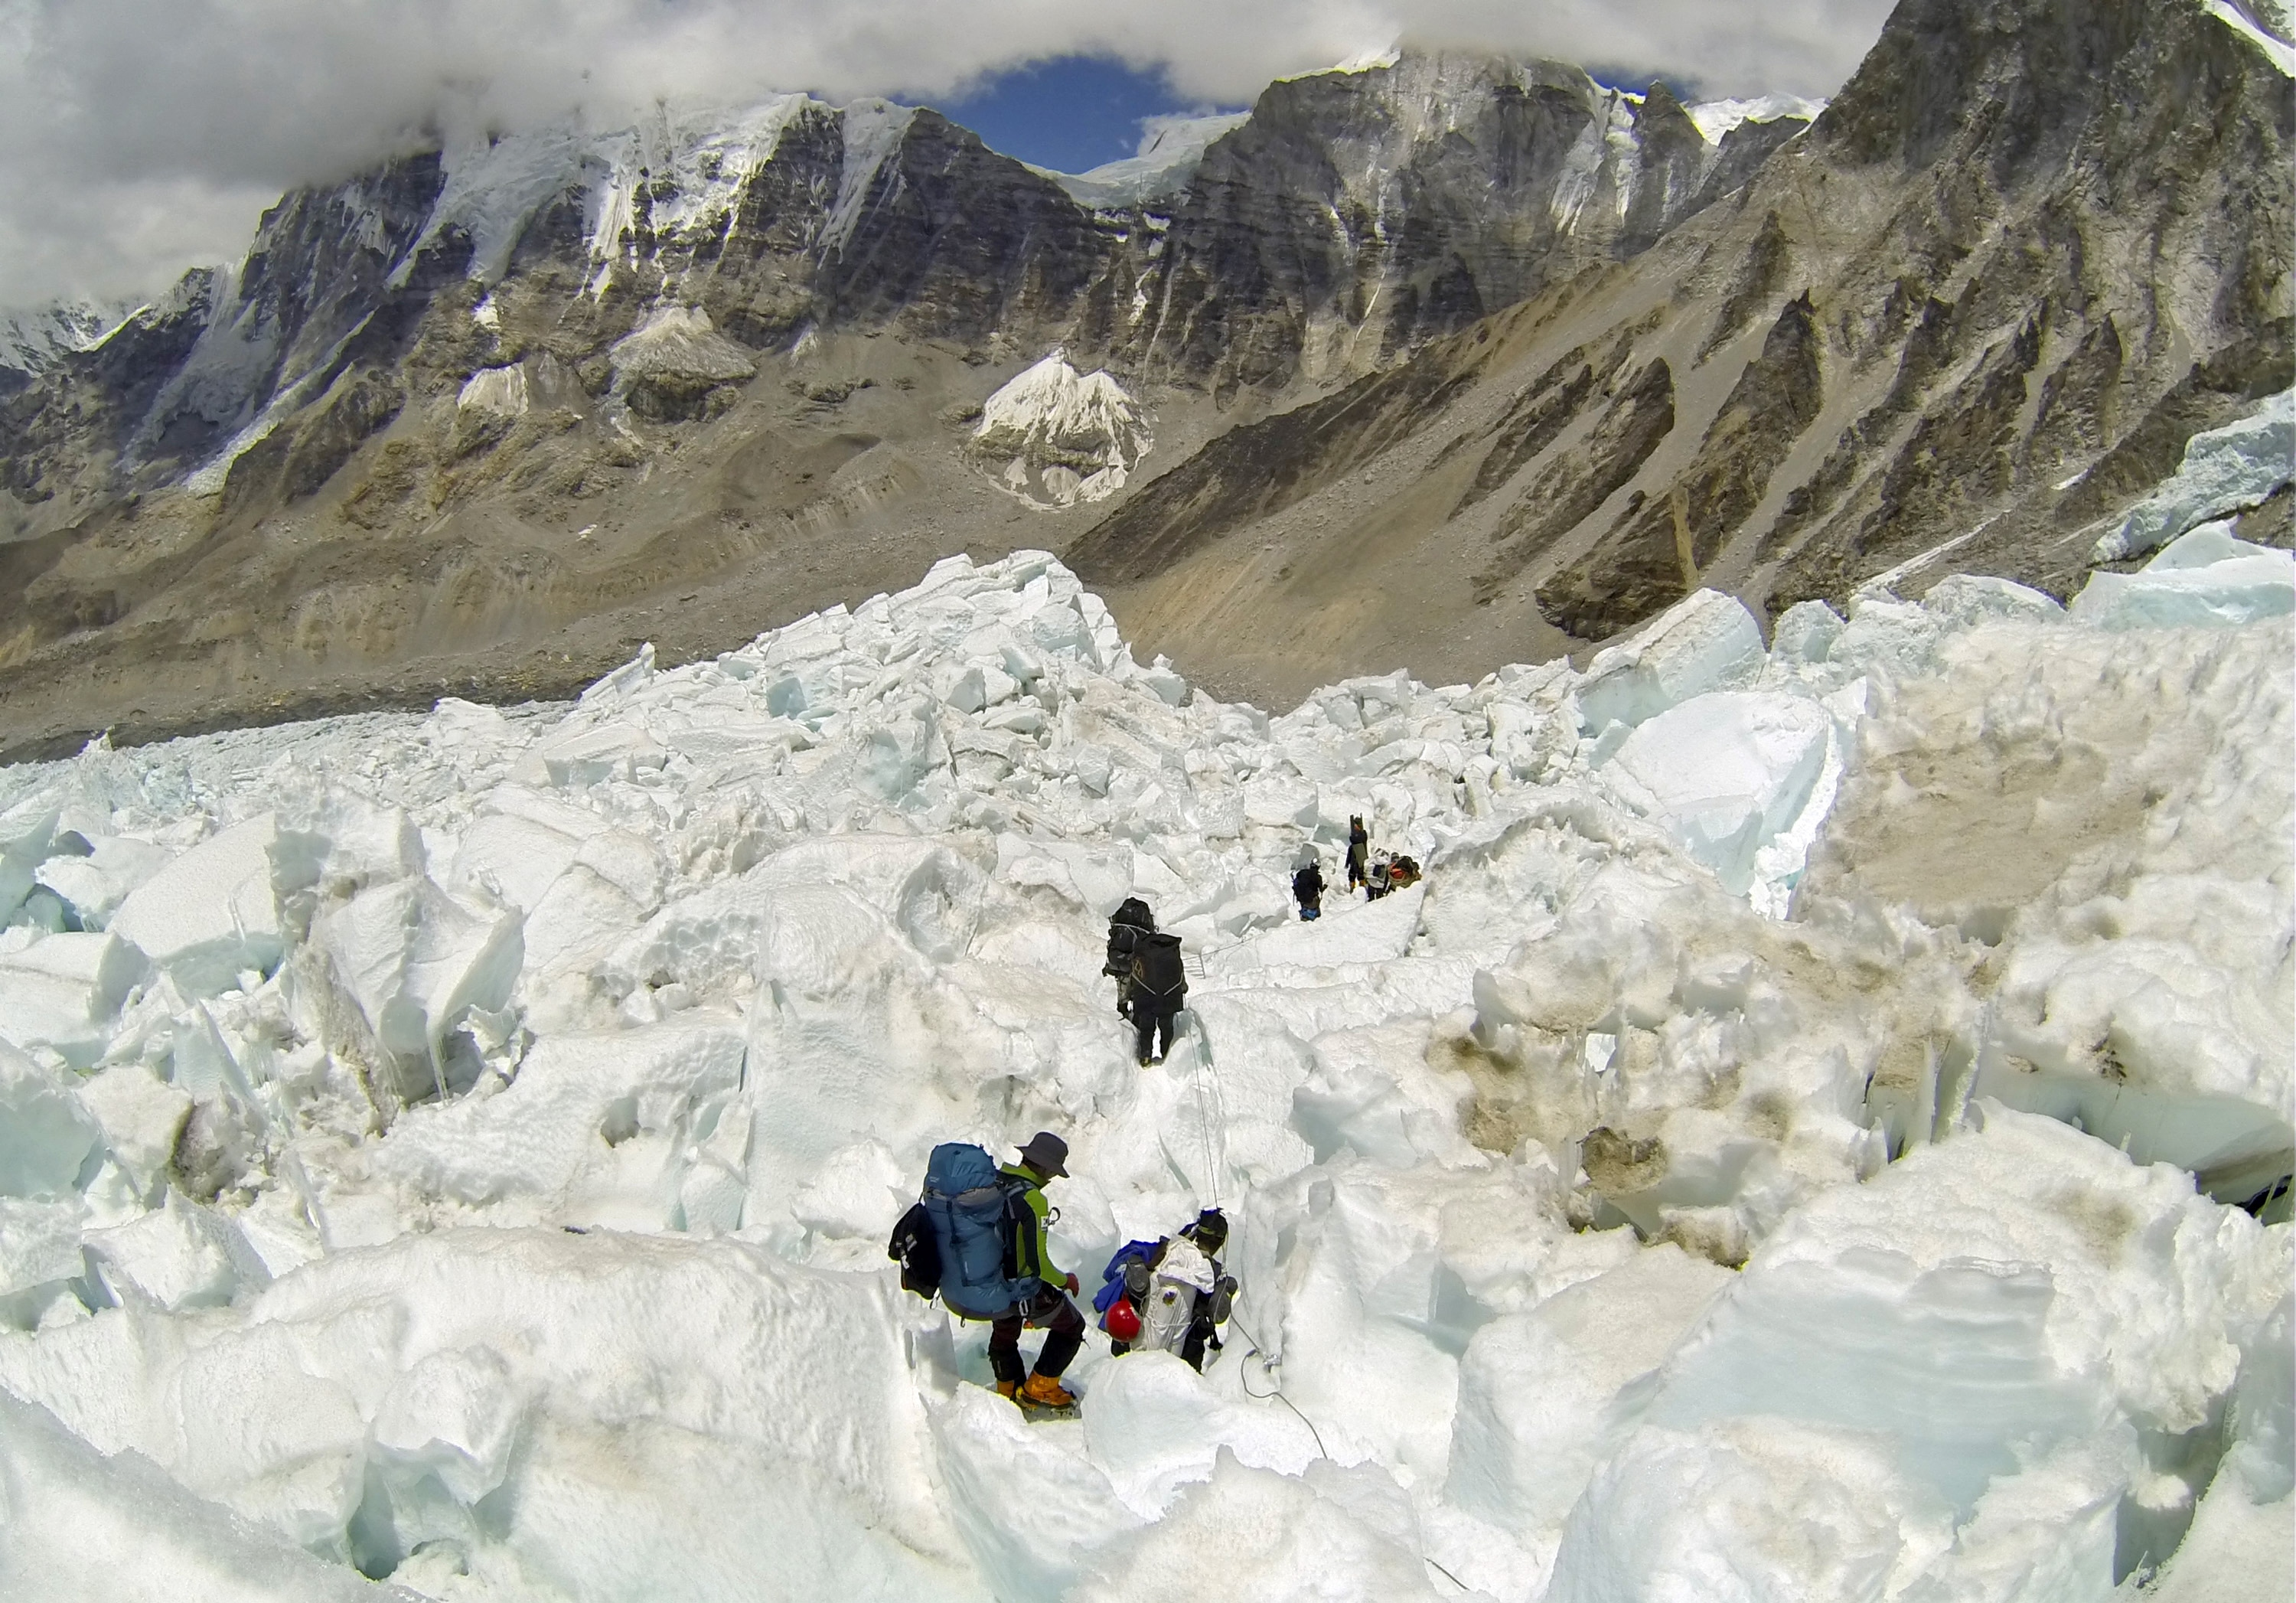 Climate change is likely to make climbing Everest more dangerous than in the past. Photo: Associated Press